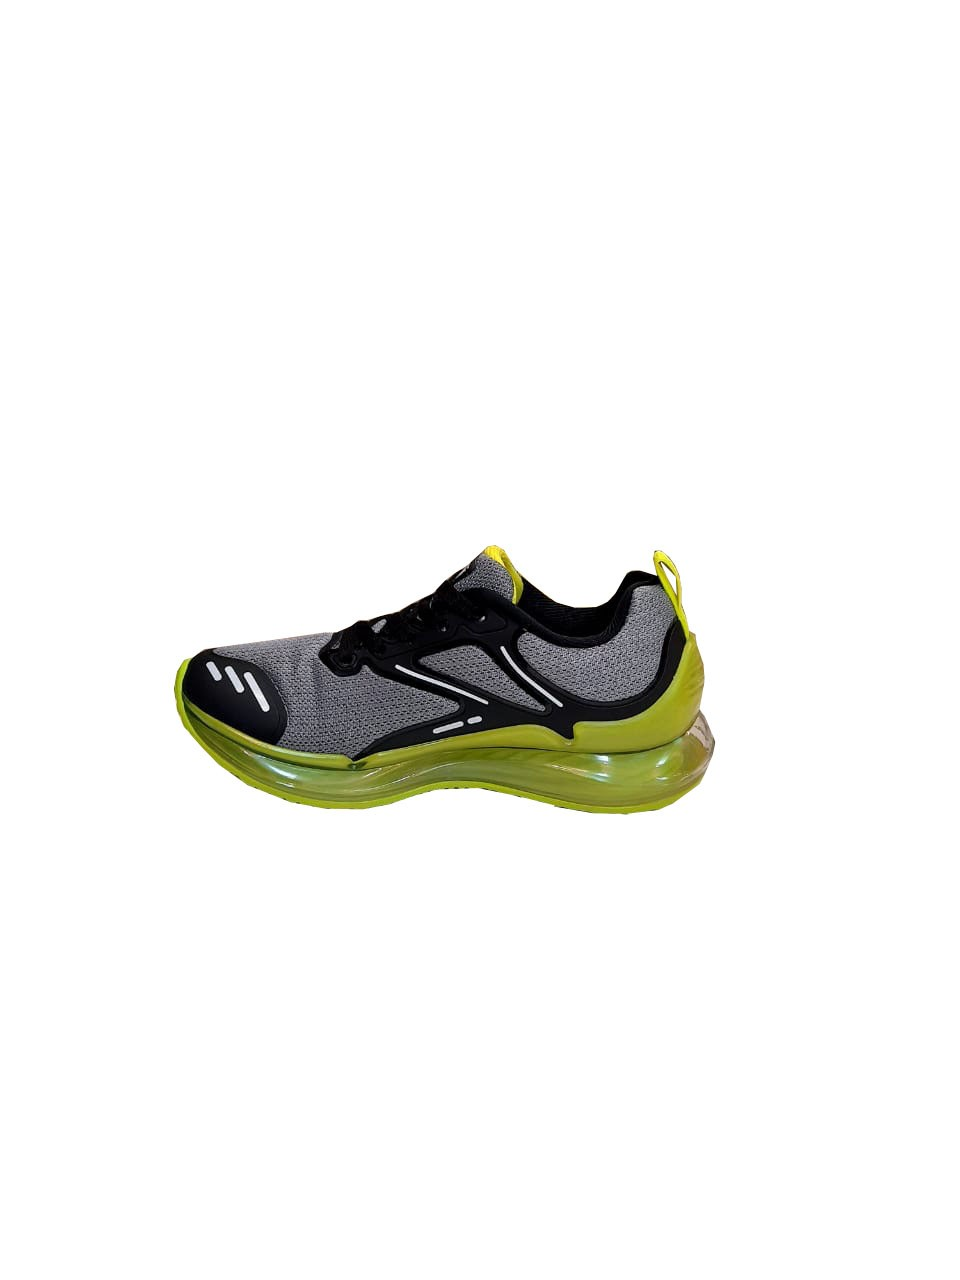 TENIS OLYMPIKUS 818 GAME KIDS